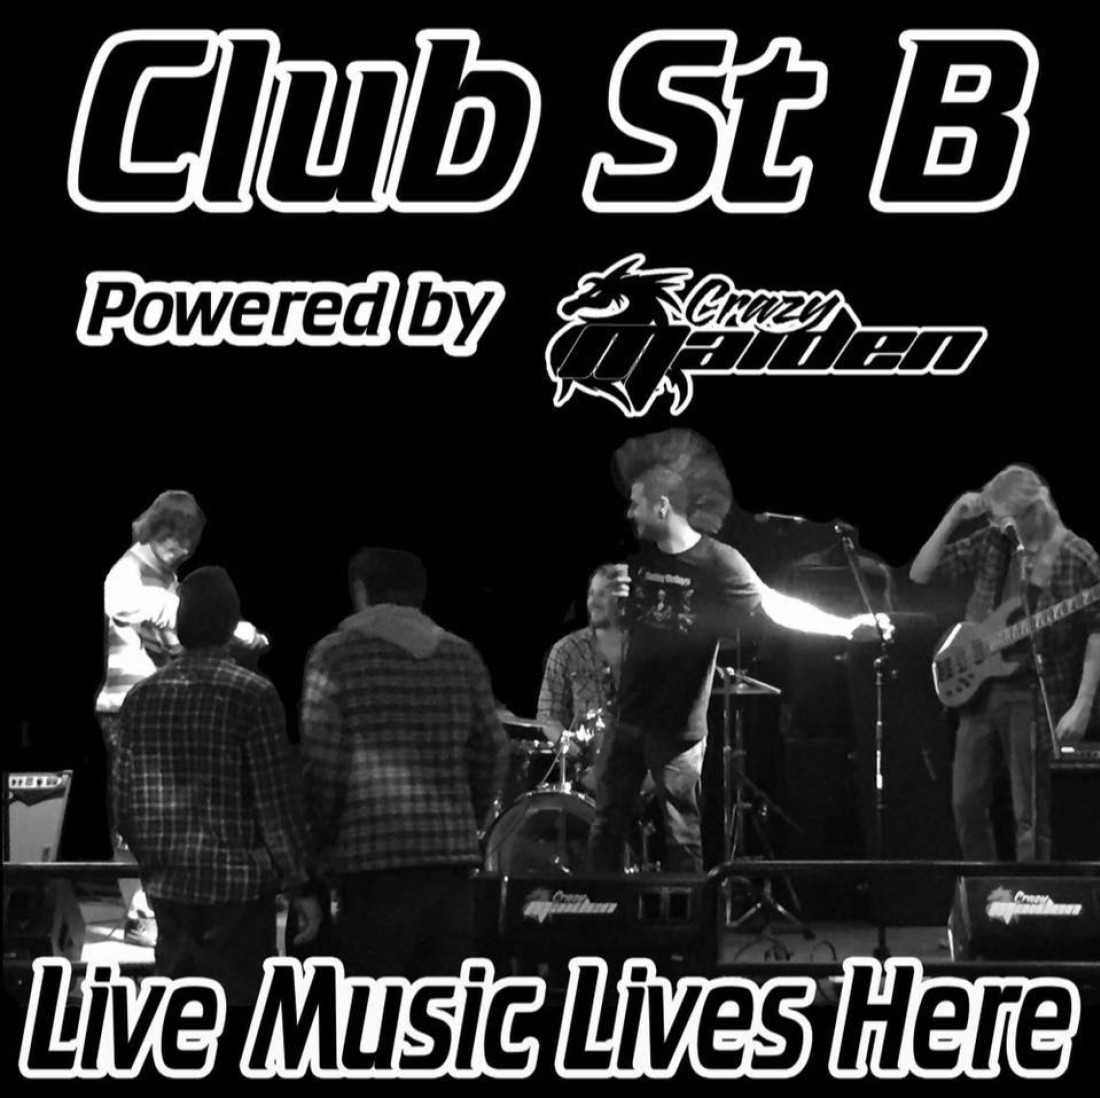 The New Club St. B